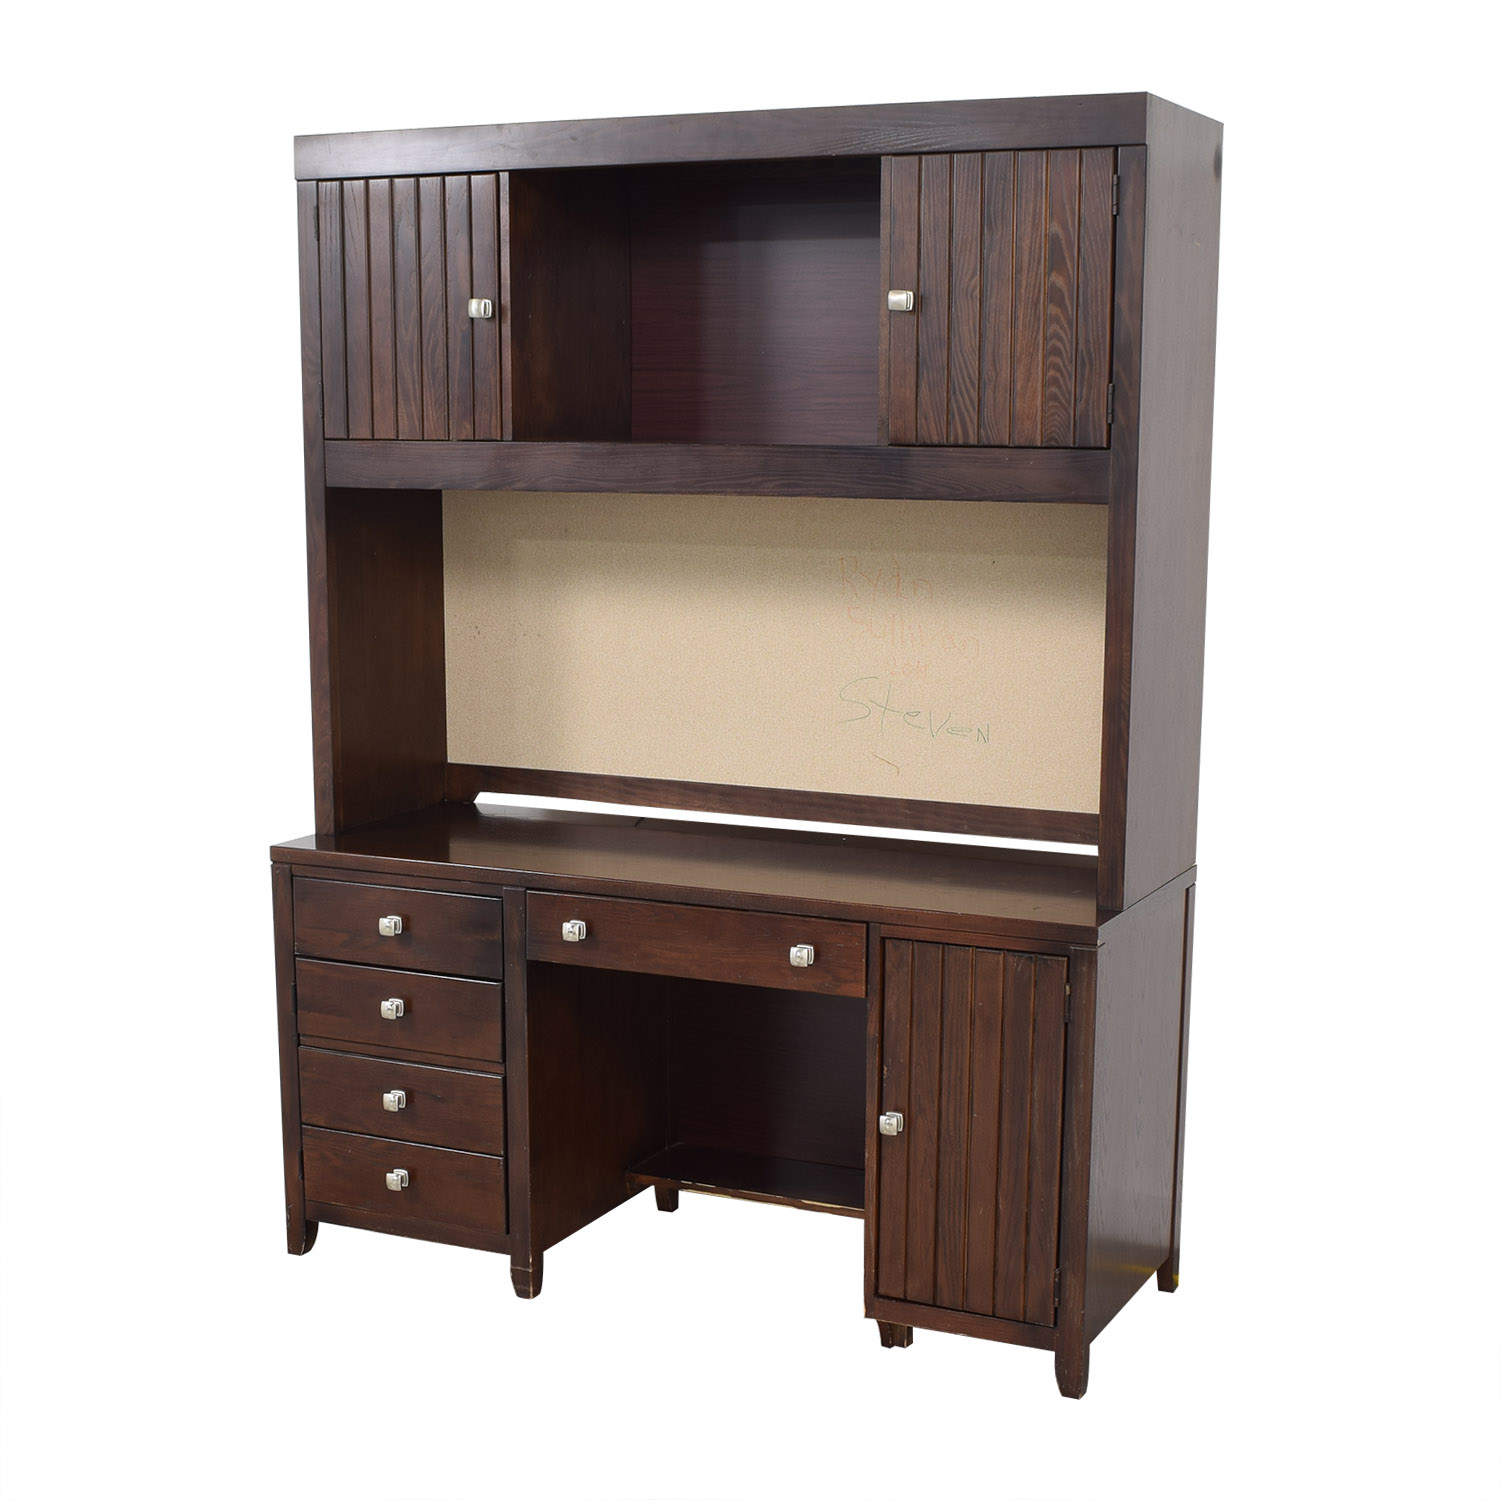 Stanley Furniture Stanley Furniture Desk with Cabinet price